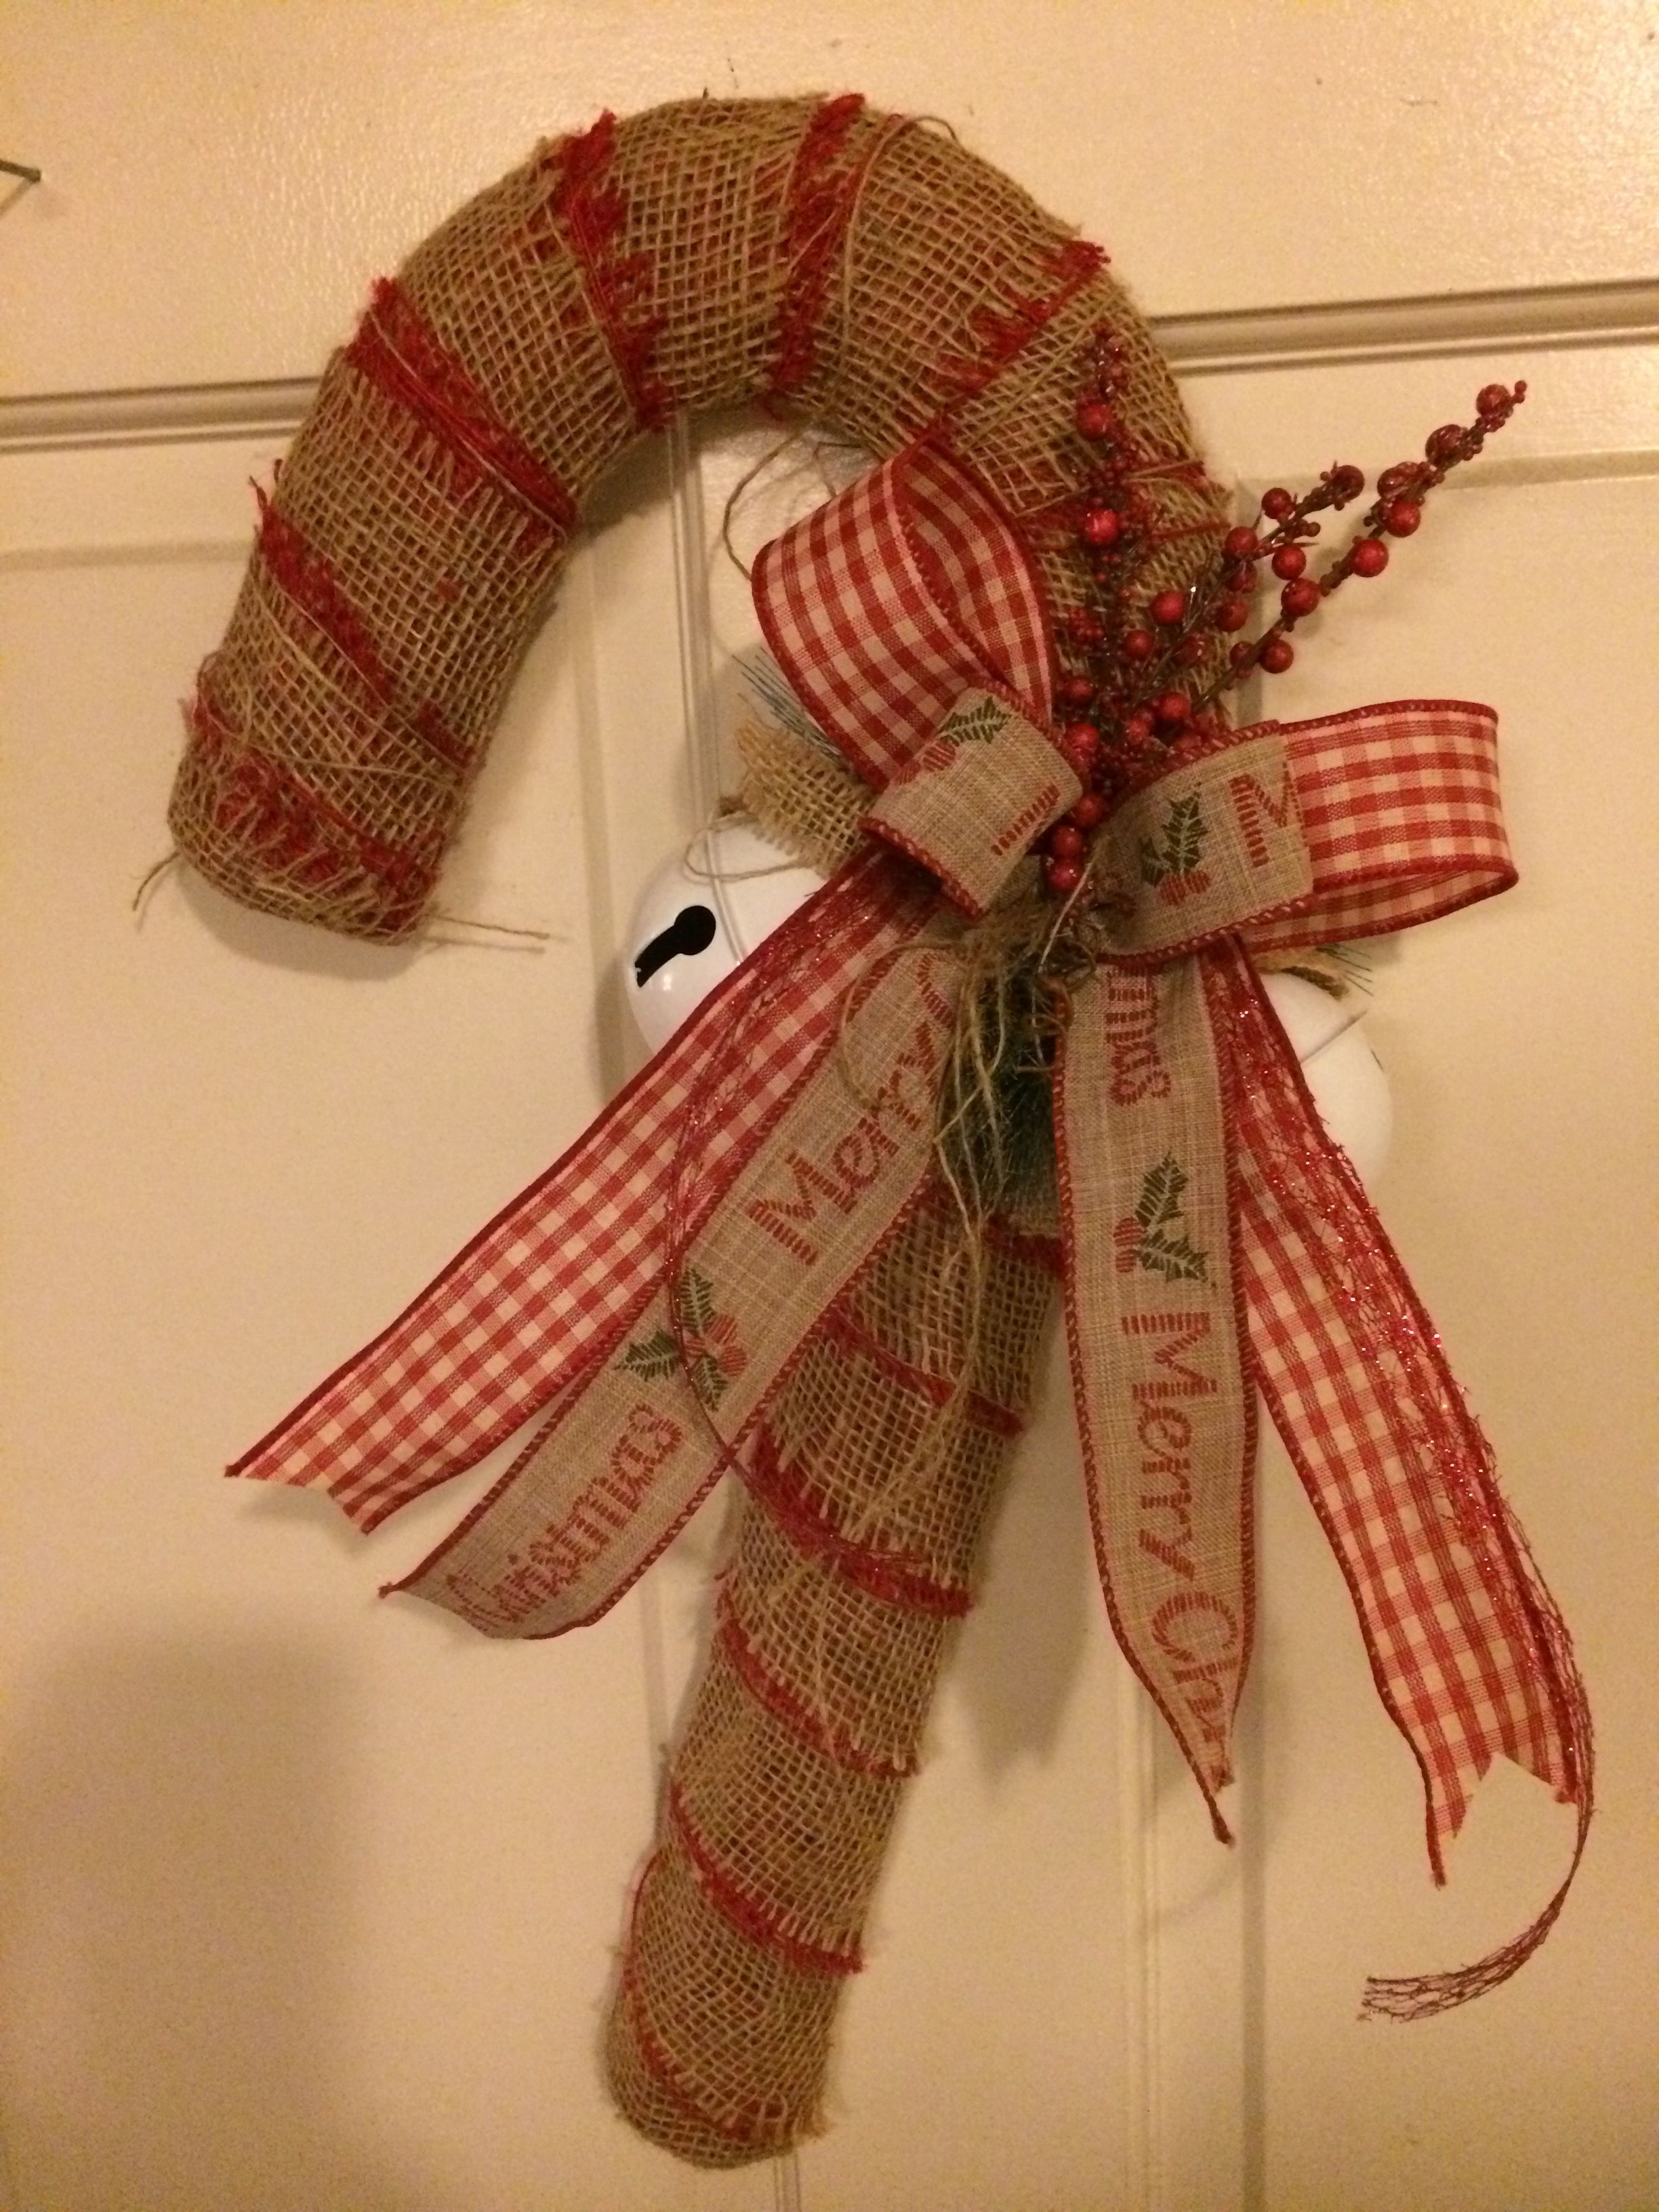 30+ Dollar tree christmas crafts to make and sell ideas in 2021